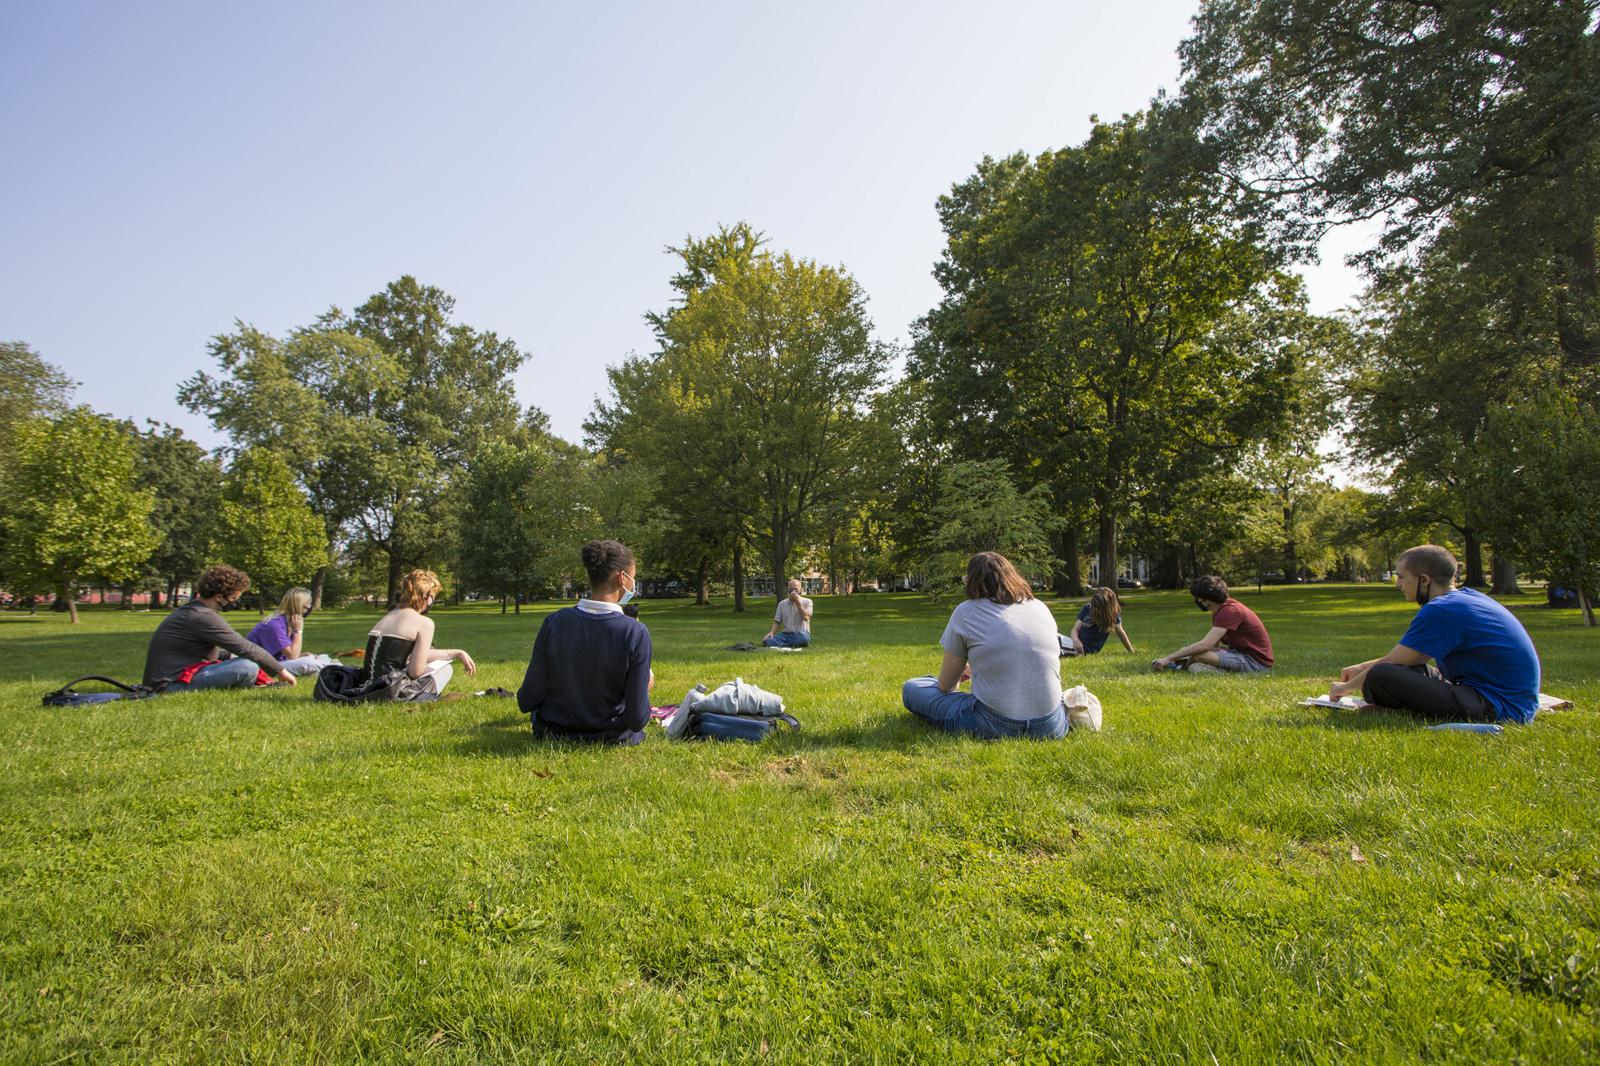 Students sitting in a circle in the grass, spaced widely apart from one another.